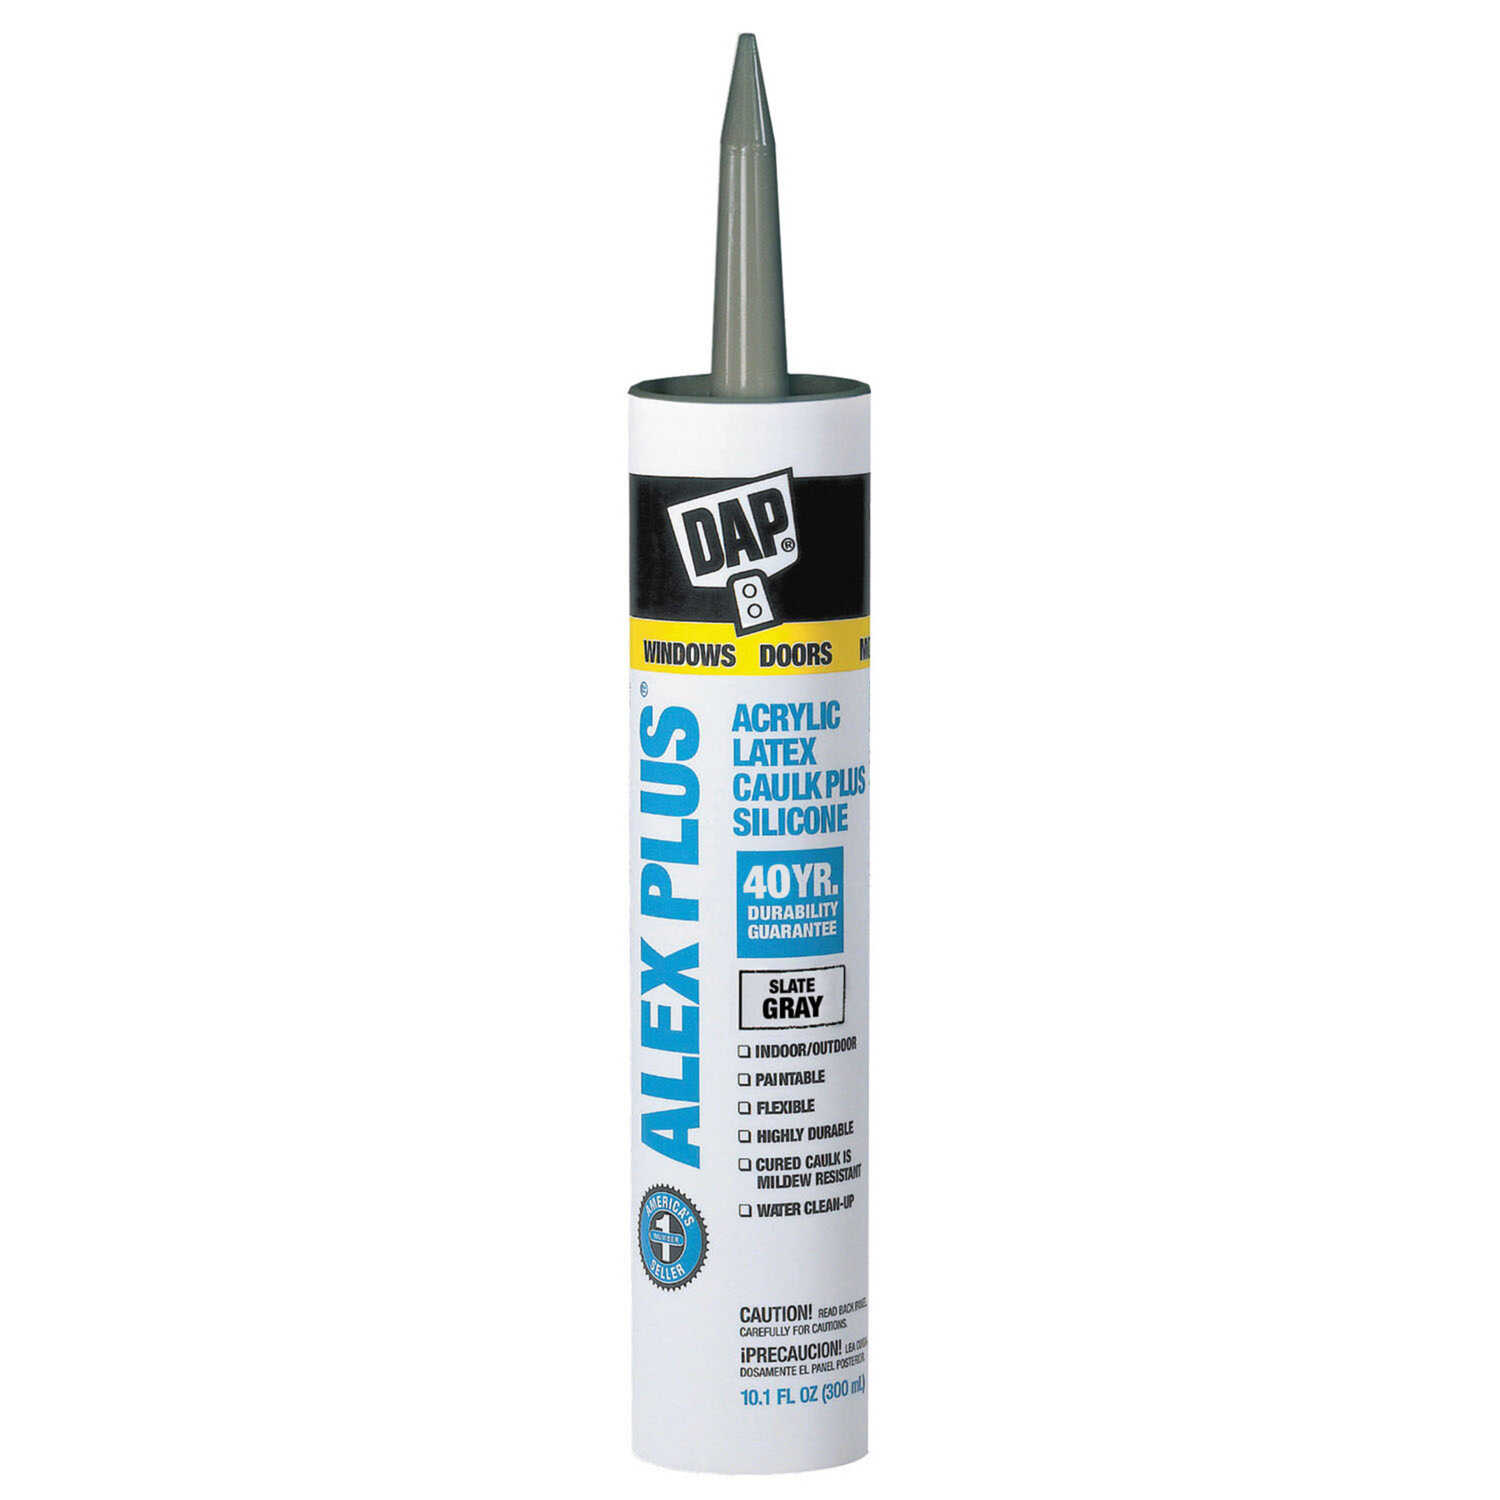 Dap  Alex Plus  Slate Gray  Acrylic Latex  All Purpose  Caulk  10.1 oz.